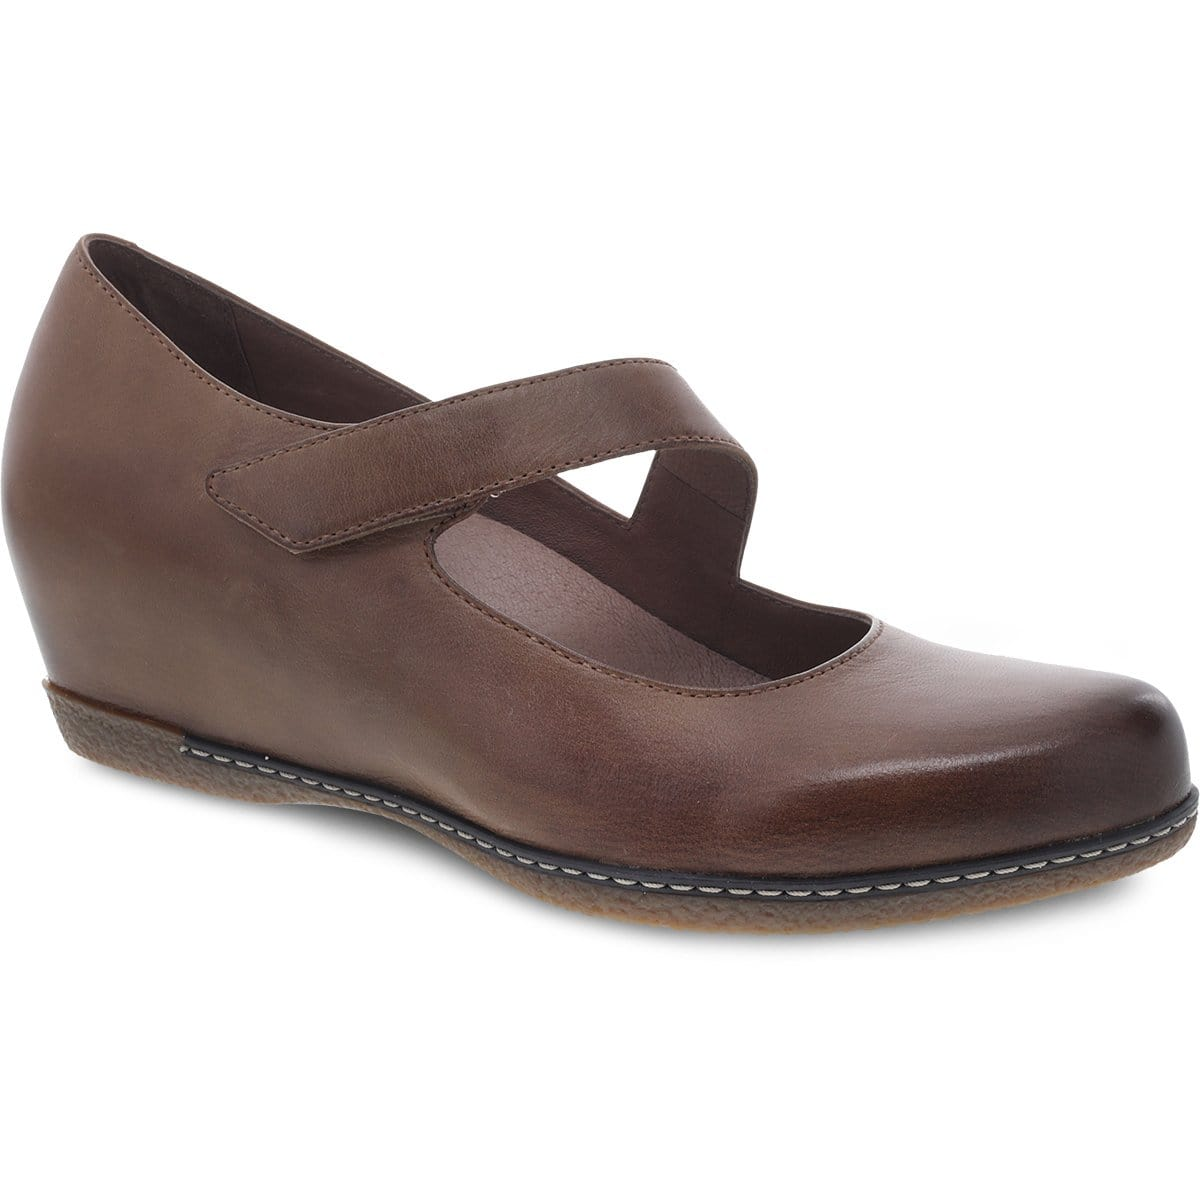 Dansko Women's Lanie Mary Jane Leather Comfort Wedge | Simons Shoes